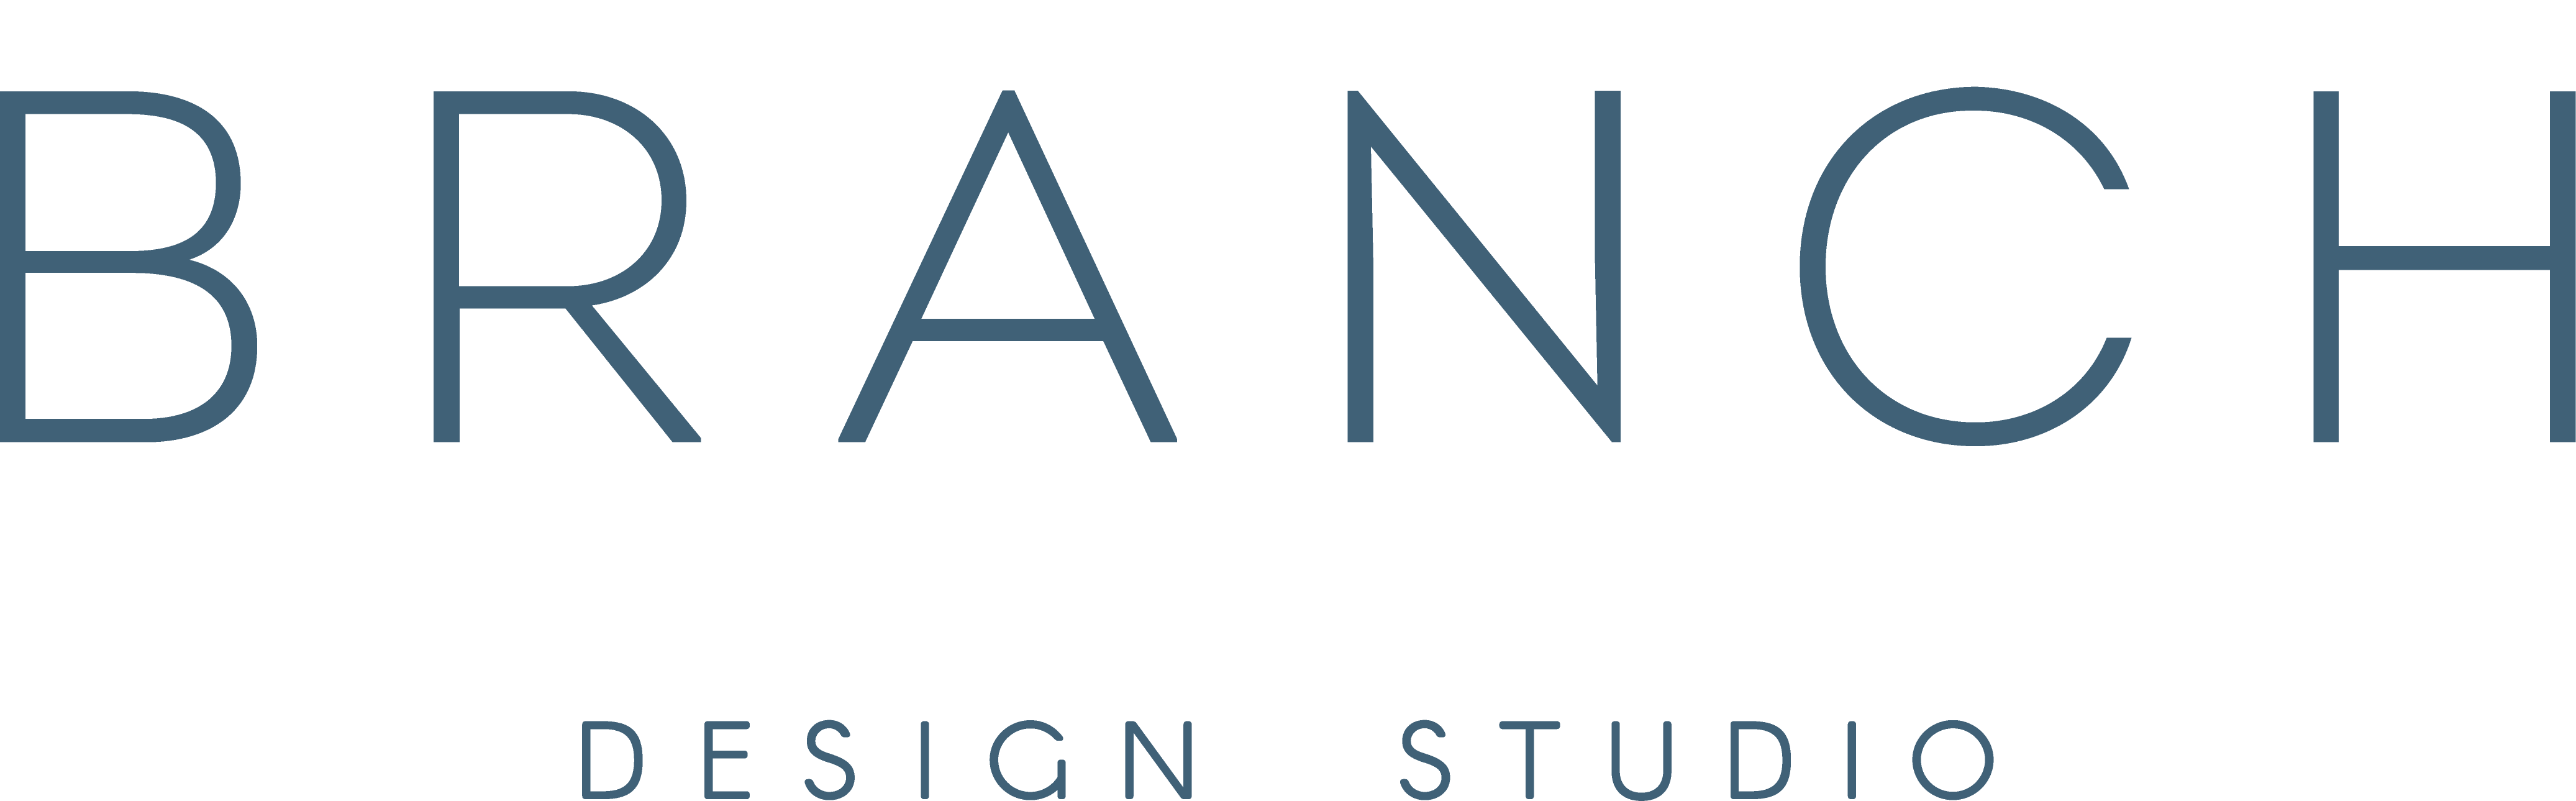 Branch Design Studio Logo